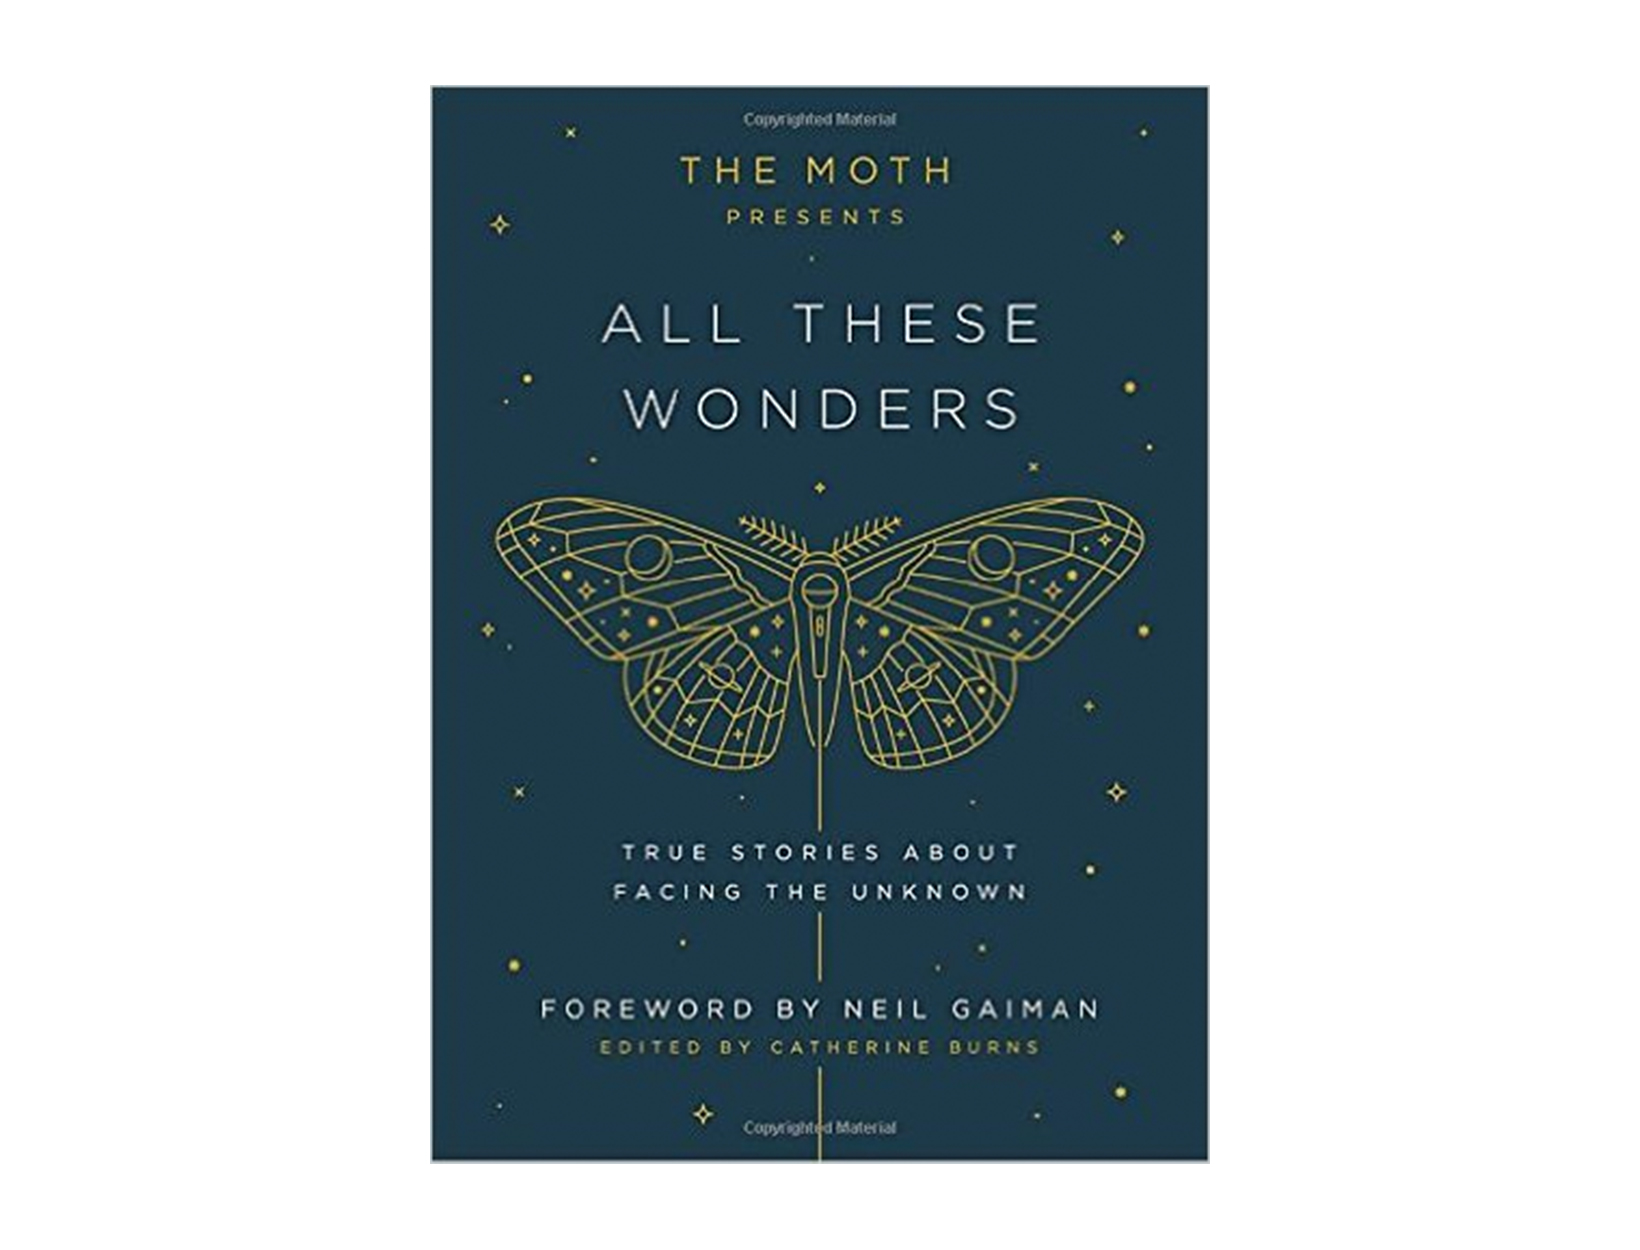 The Moth Presents All These Wonders, Edited by Catherine Burns